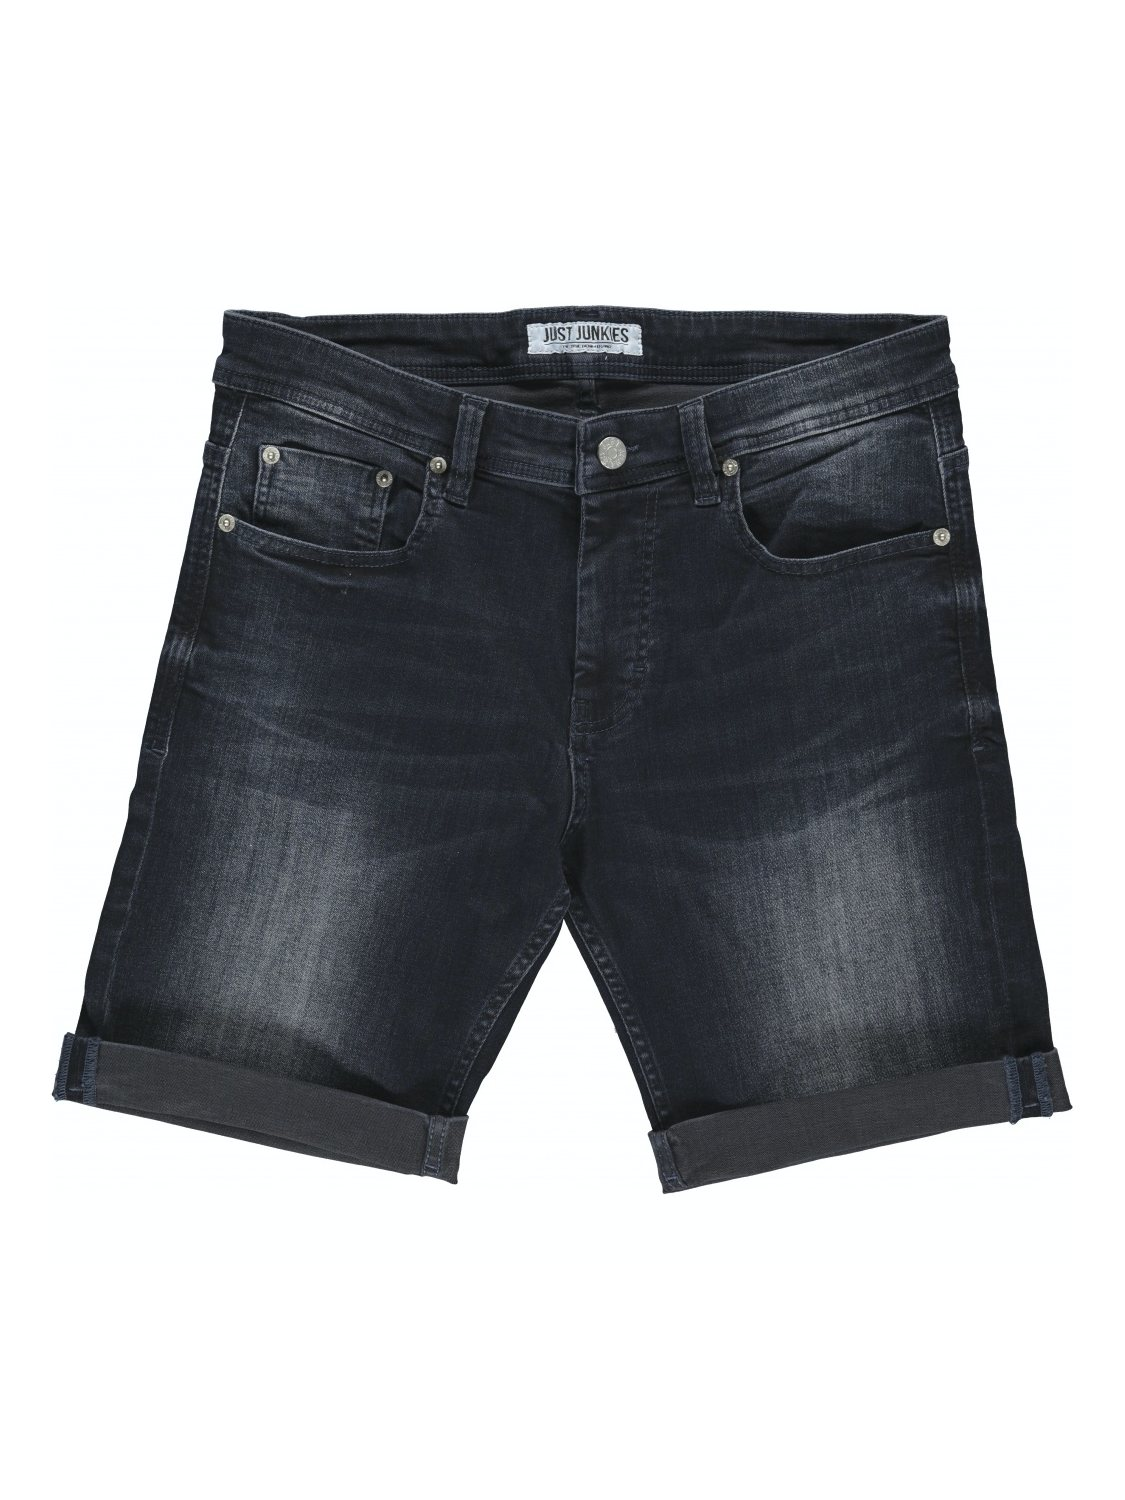 Just Junkies mike shorts JJ1764 dark denim | GATE 36 Hobro